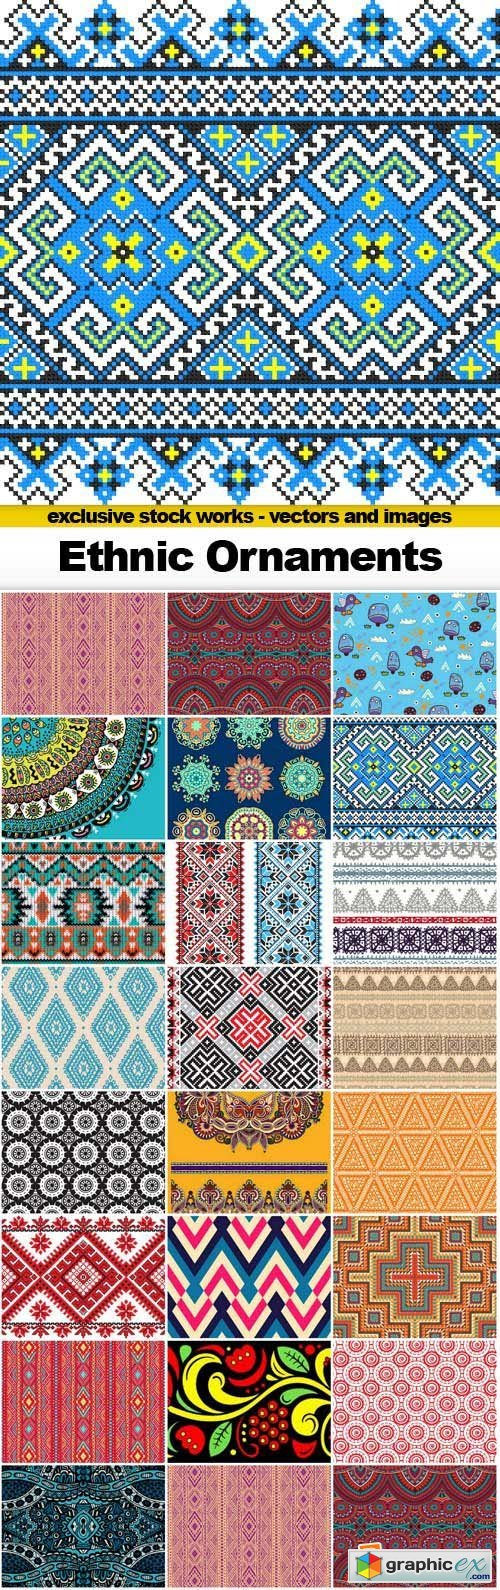 Ethnic Ornaments - 25x EPS